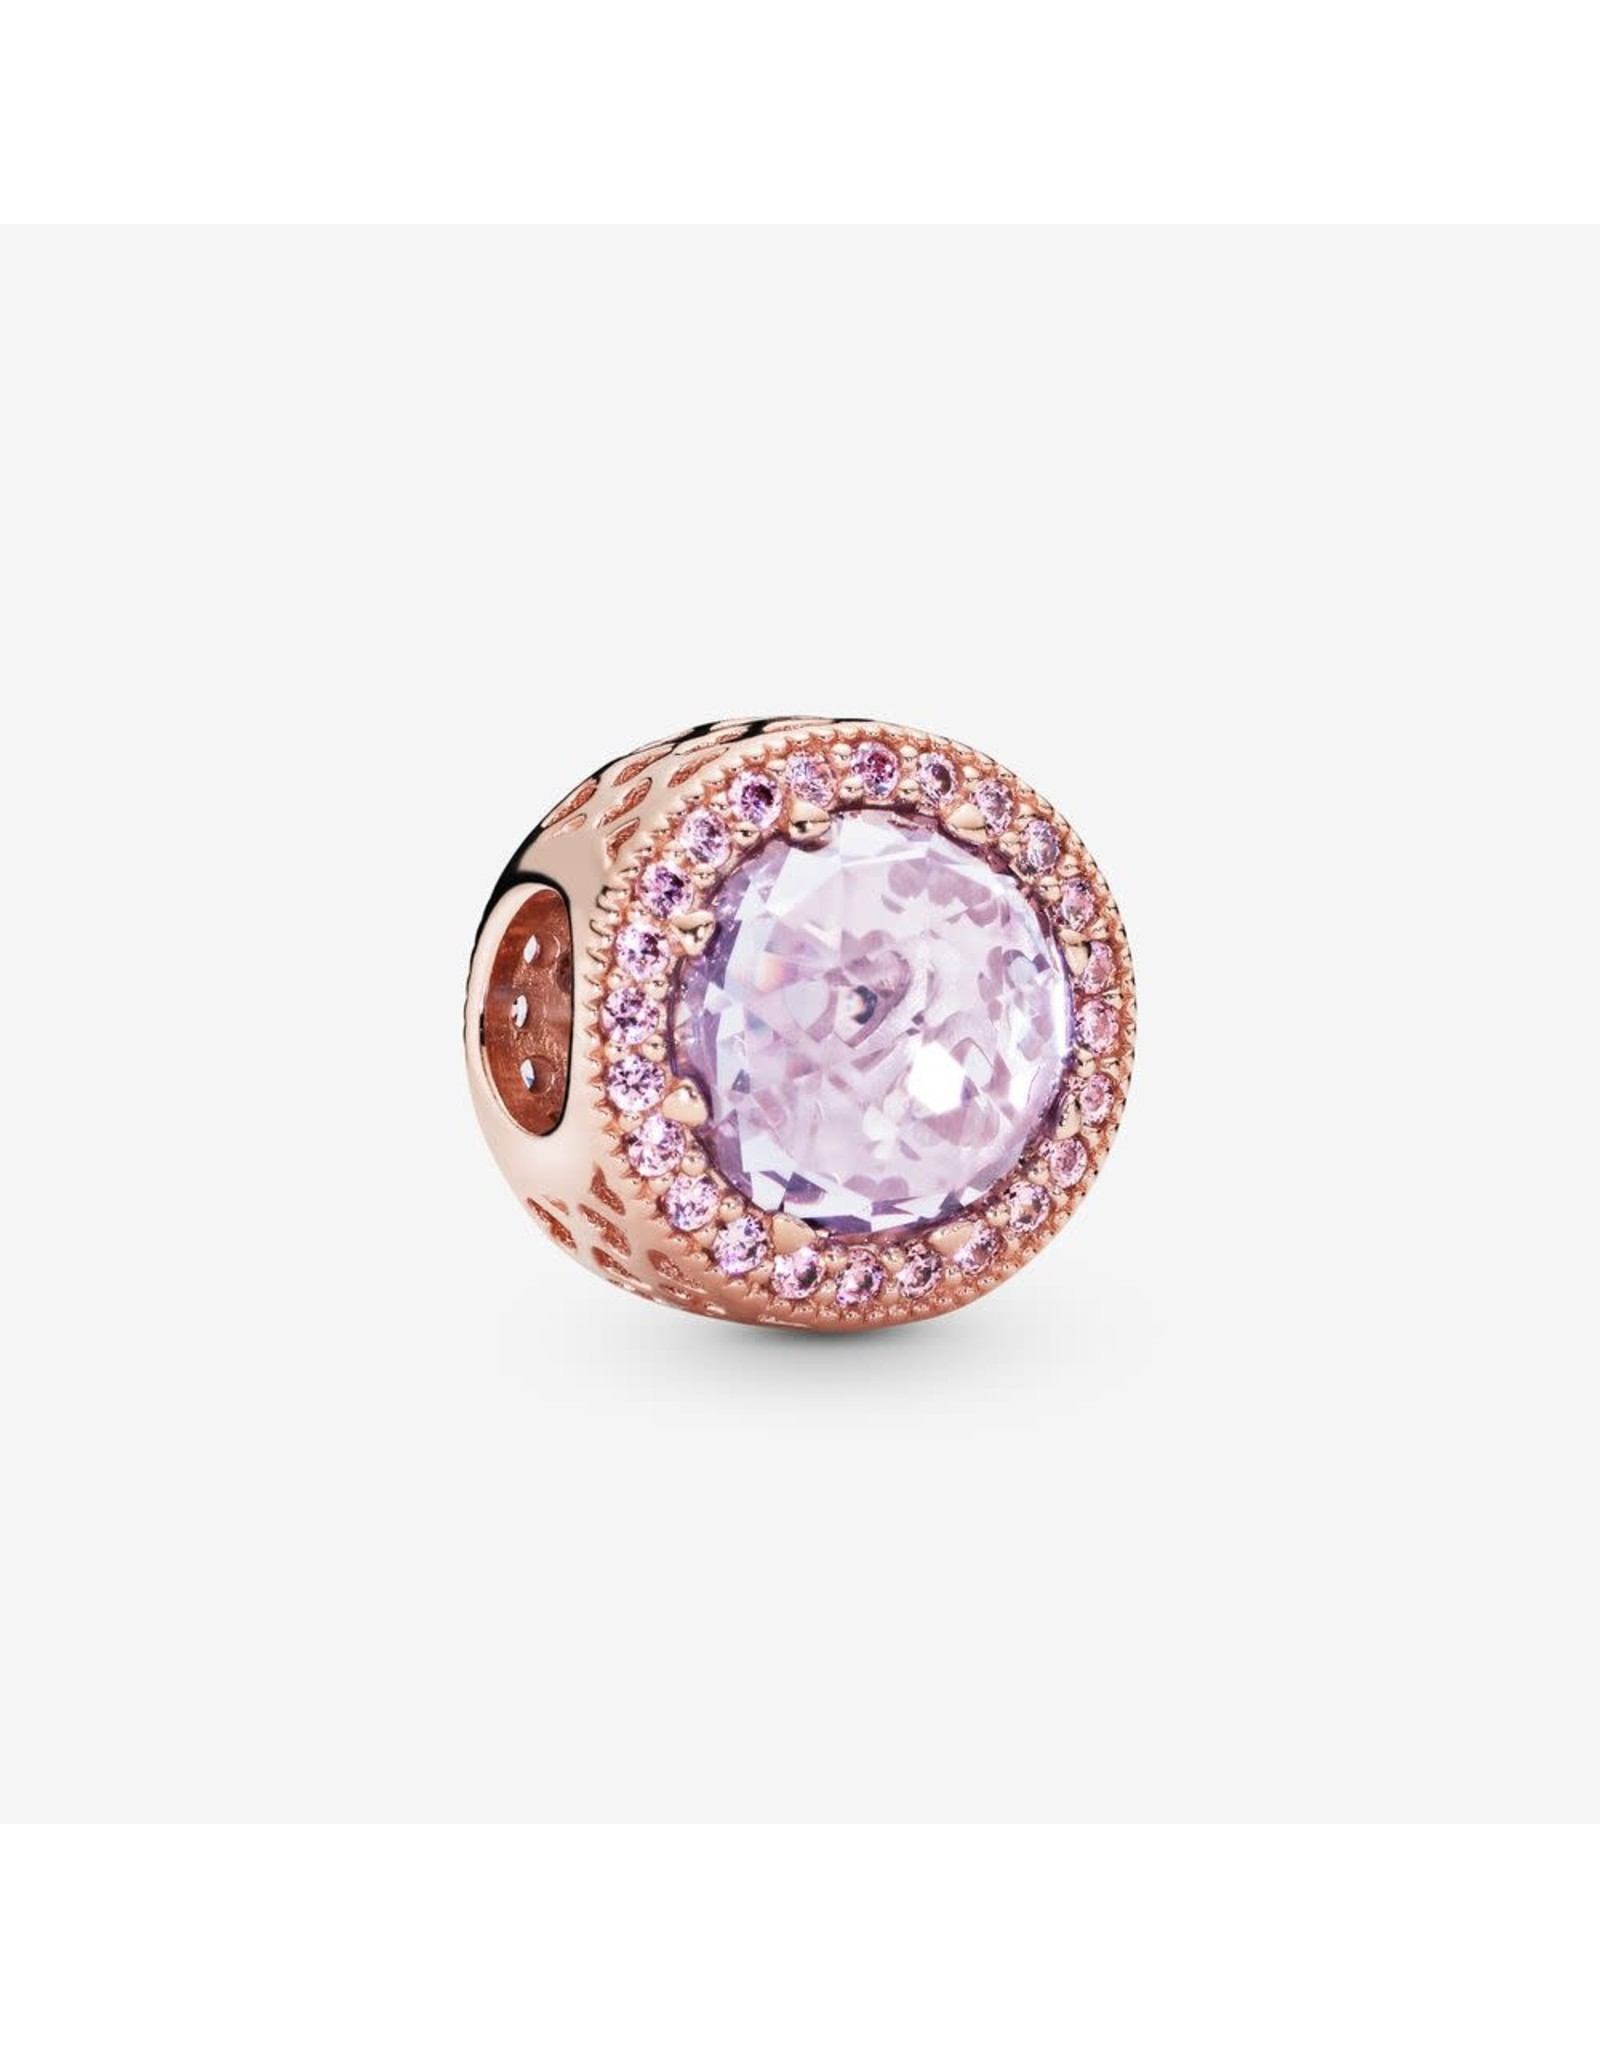 Pandora Pandora Charm Radiant Hearts, Multi-Colored CZ  Rose Gold, Lavender CZ, Pink CZ